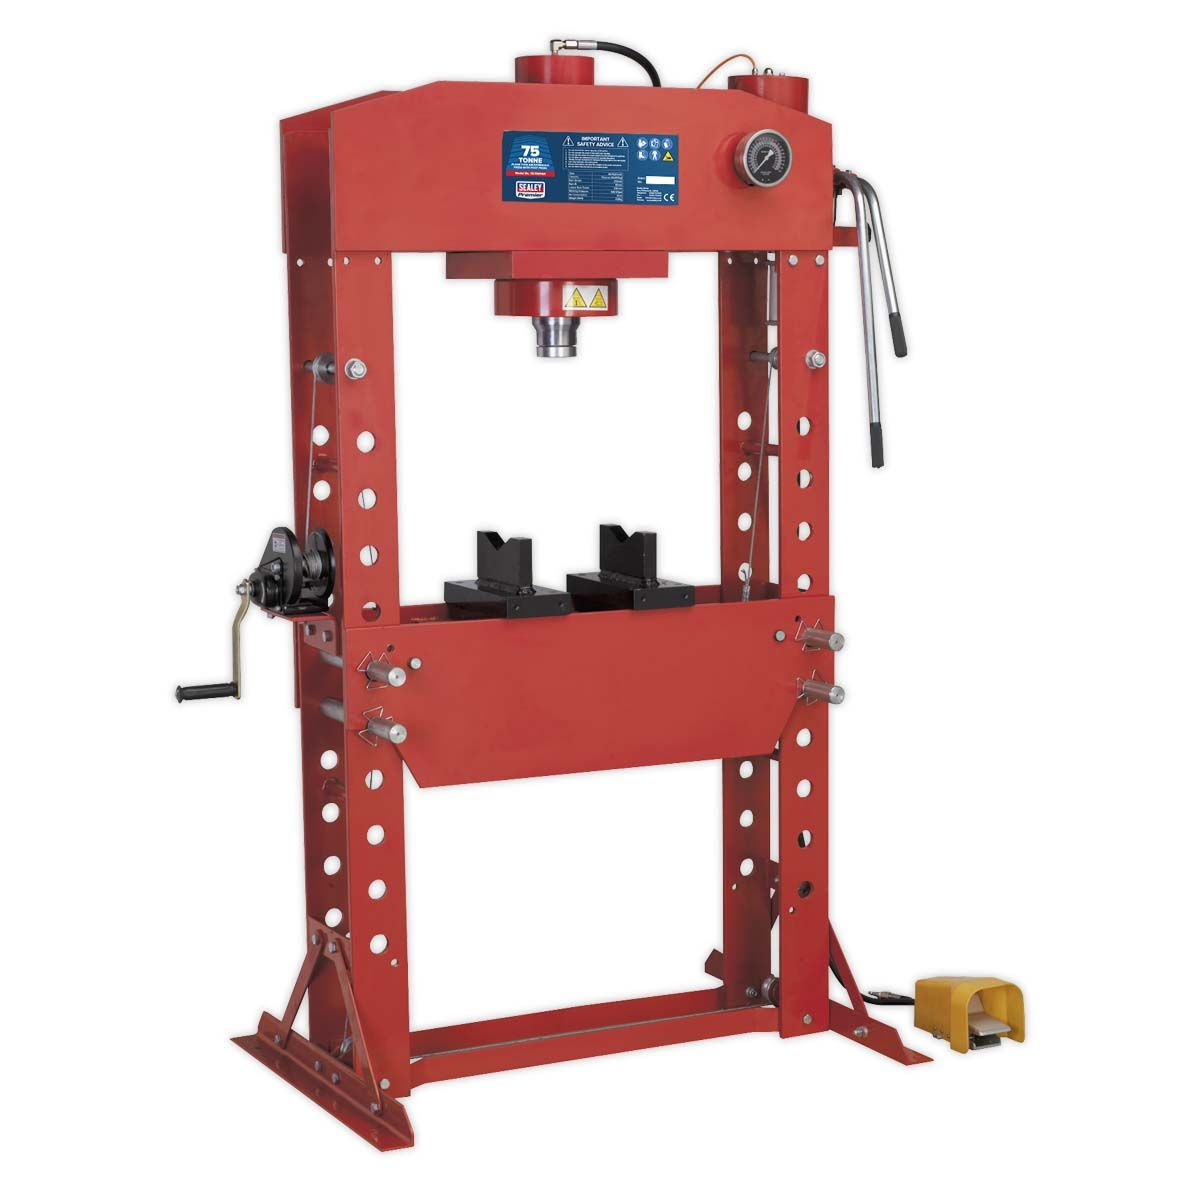 Sealey Air/Hydraulic Press 75tonne Floor Type with Foot Pedal